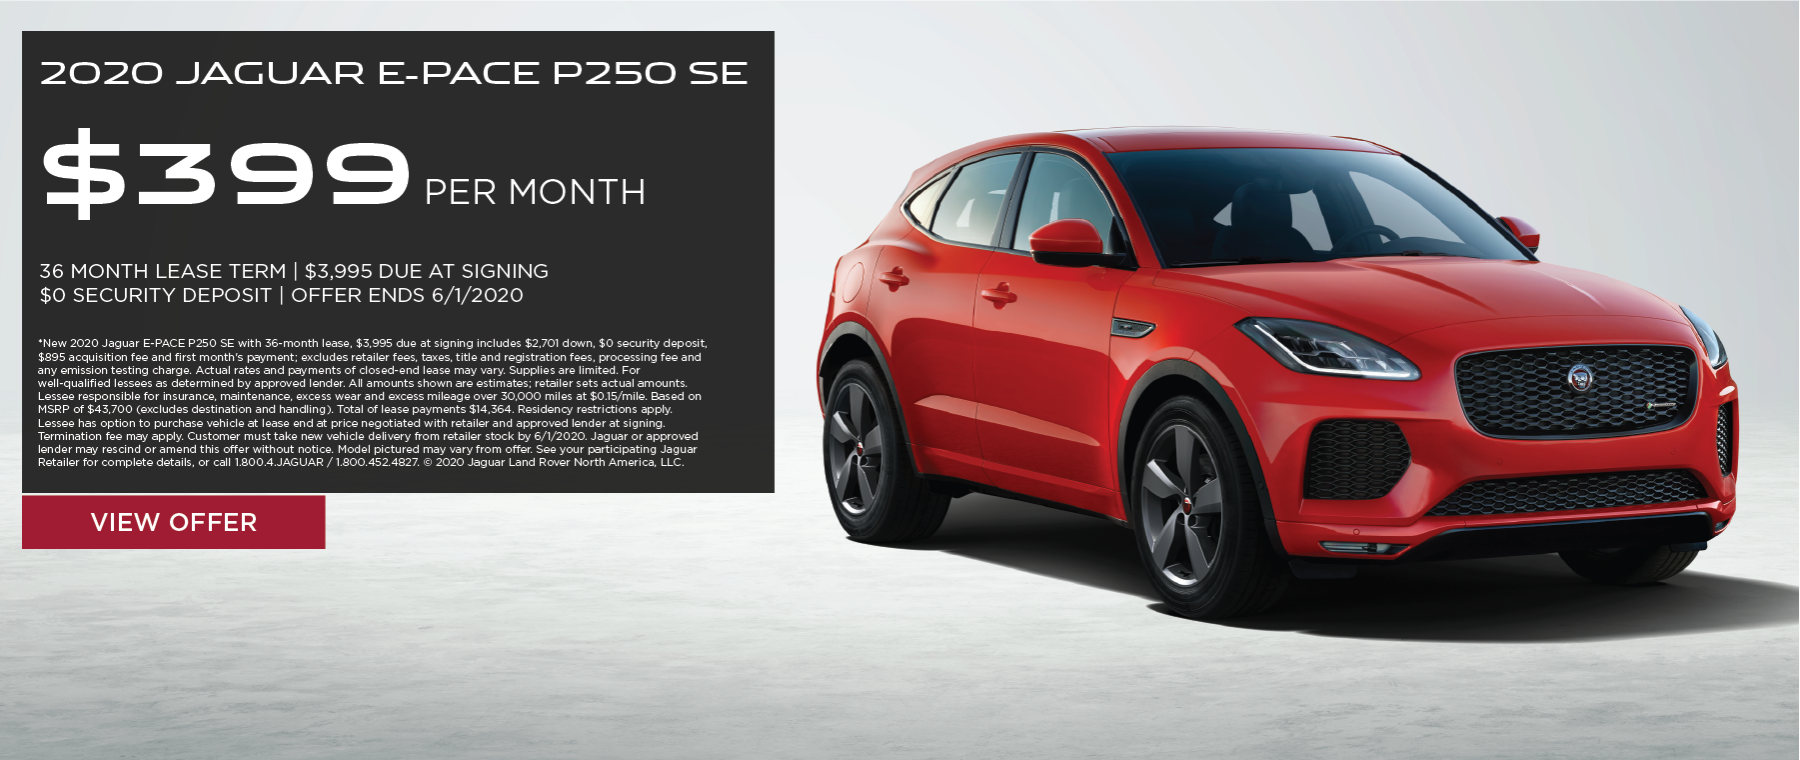 2020 JAGUAR E-PACE P250 SE. $399 PER MONTH. 36 MONTH LEASE TERM. $3,995 CASH DUE AT SIGNING. $0 SECURITY DEPOSIT. 10,000 MILES PER YEAR. EXCLUDES RETAILER FEES, TAXES, TITLE AND REGISTRATION FEES, PROCESSING FEE AND ANY EMISSION TESTING CHARGE. OFFER ENDS 6/1/2020.